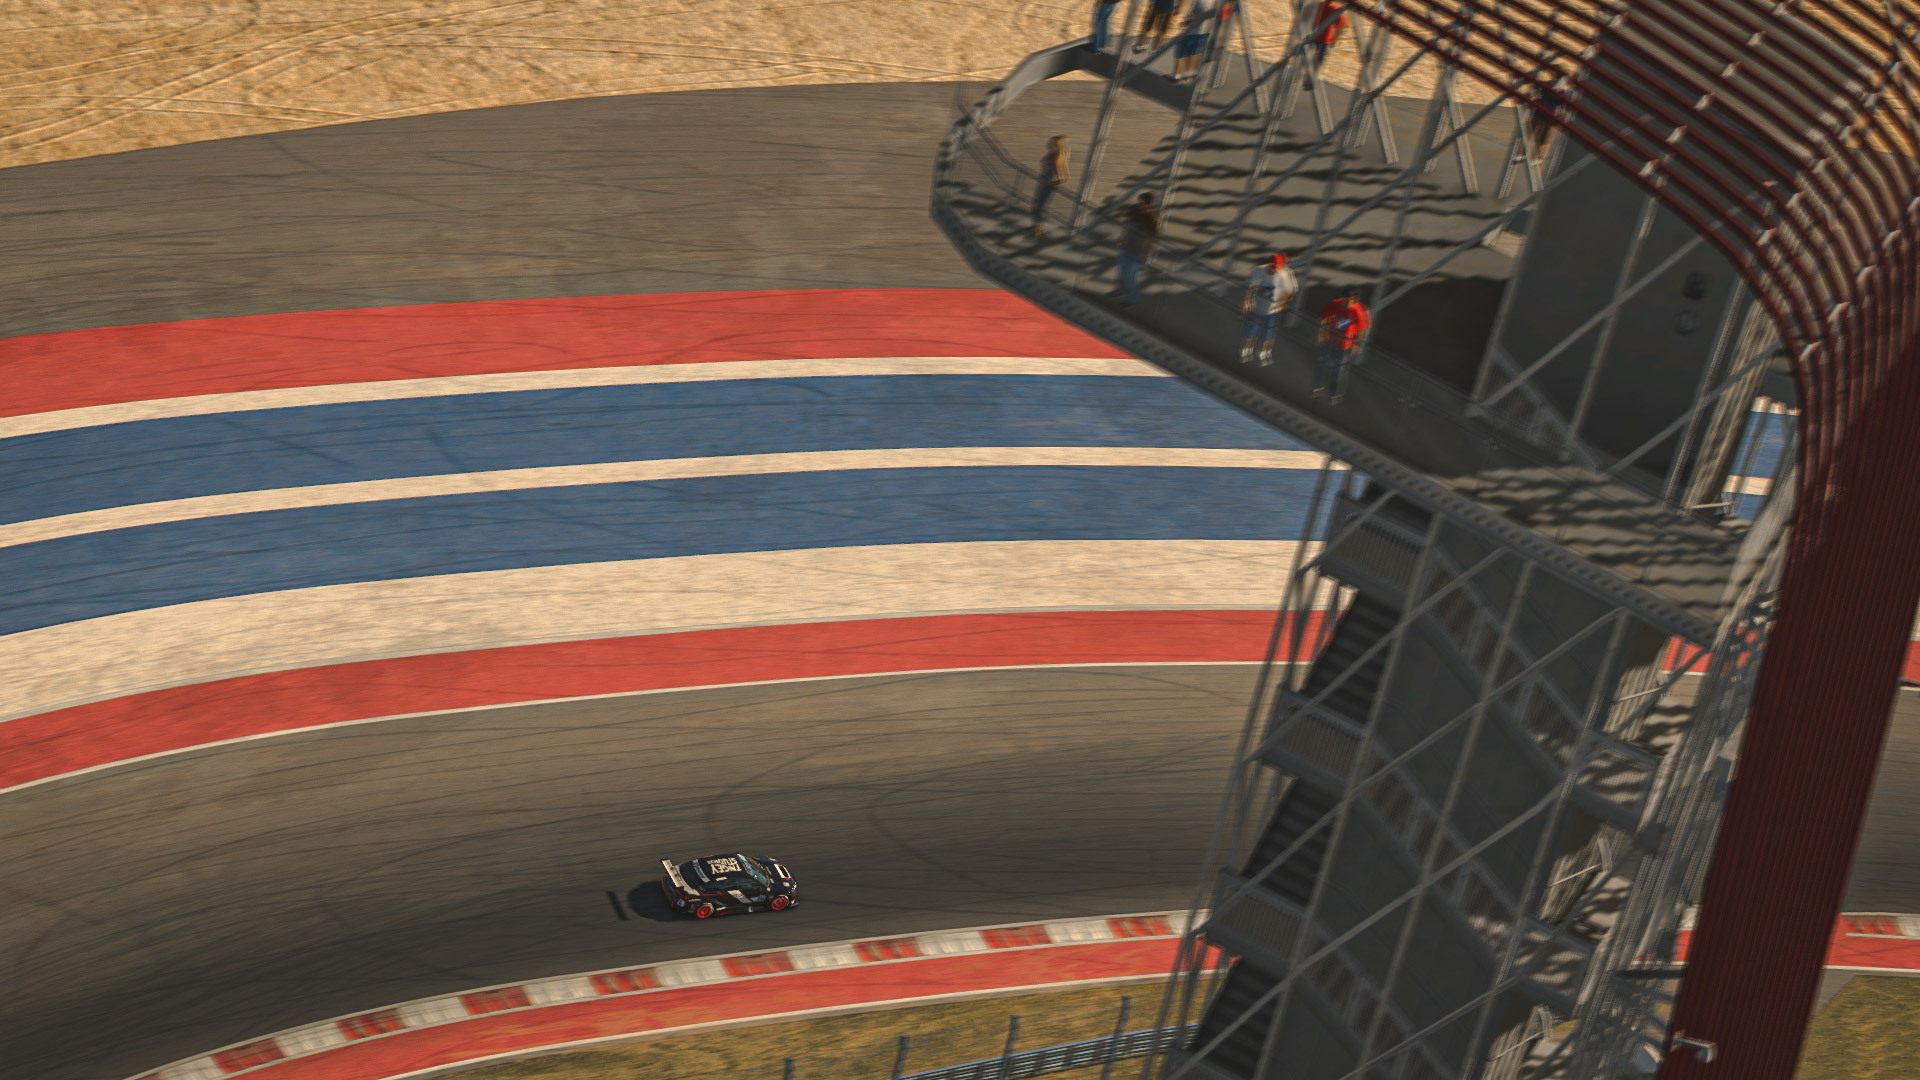 Apex Racing League Touring Car Championship | Round 12 at COTA